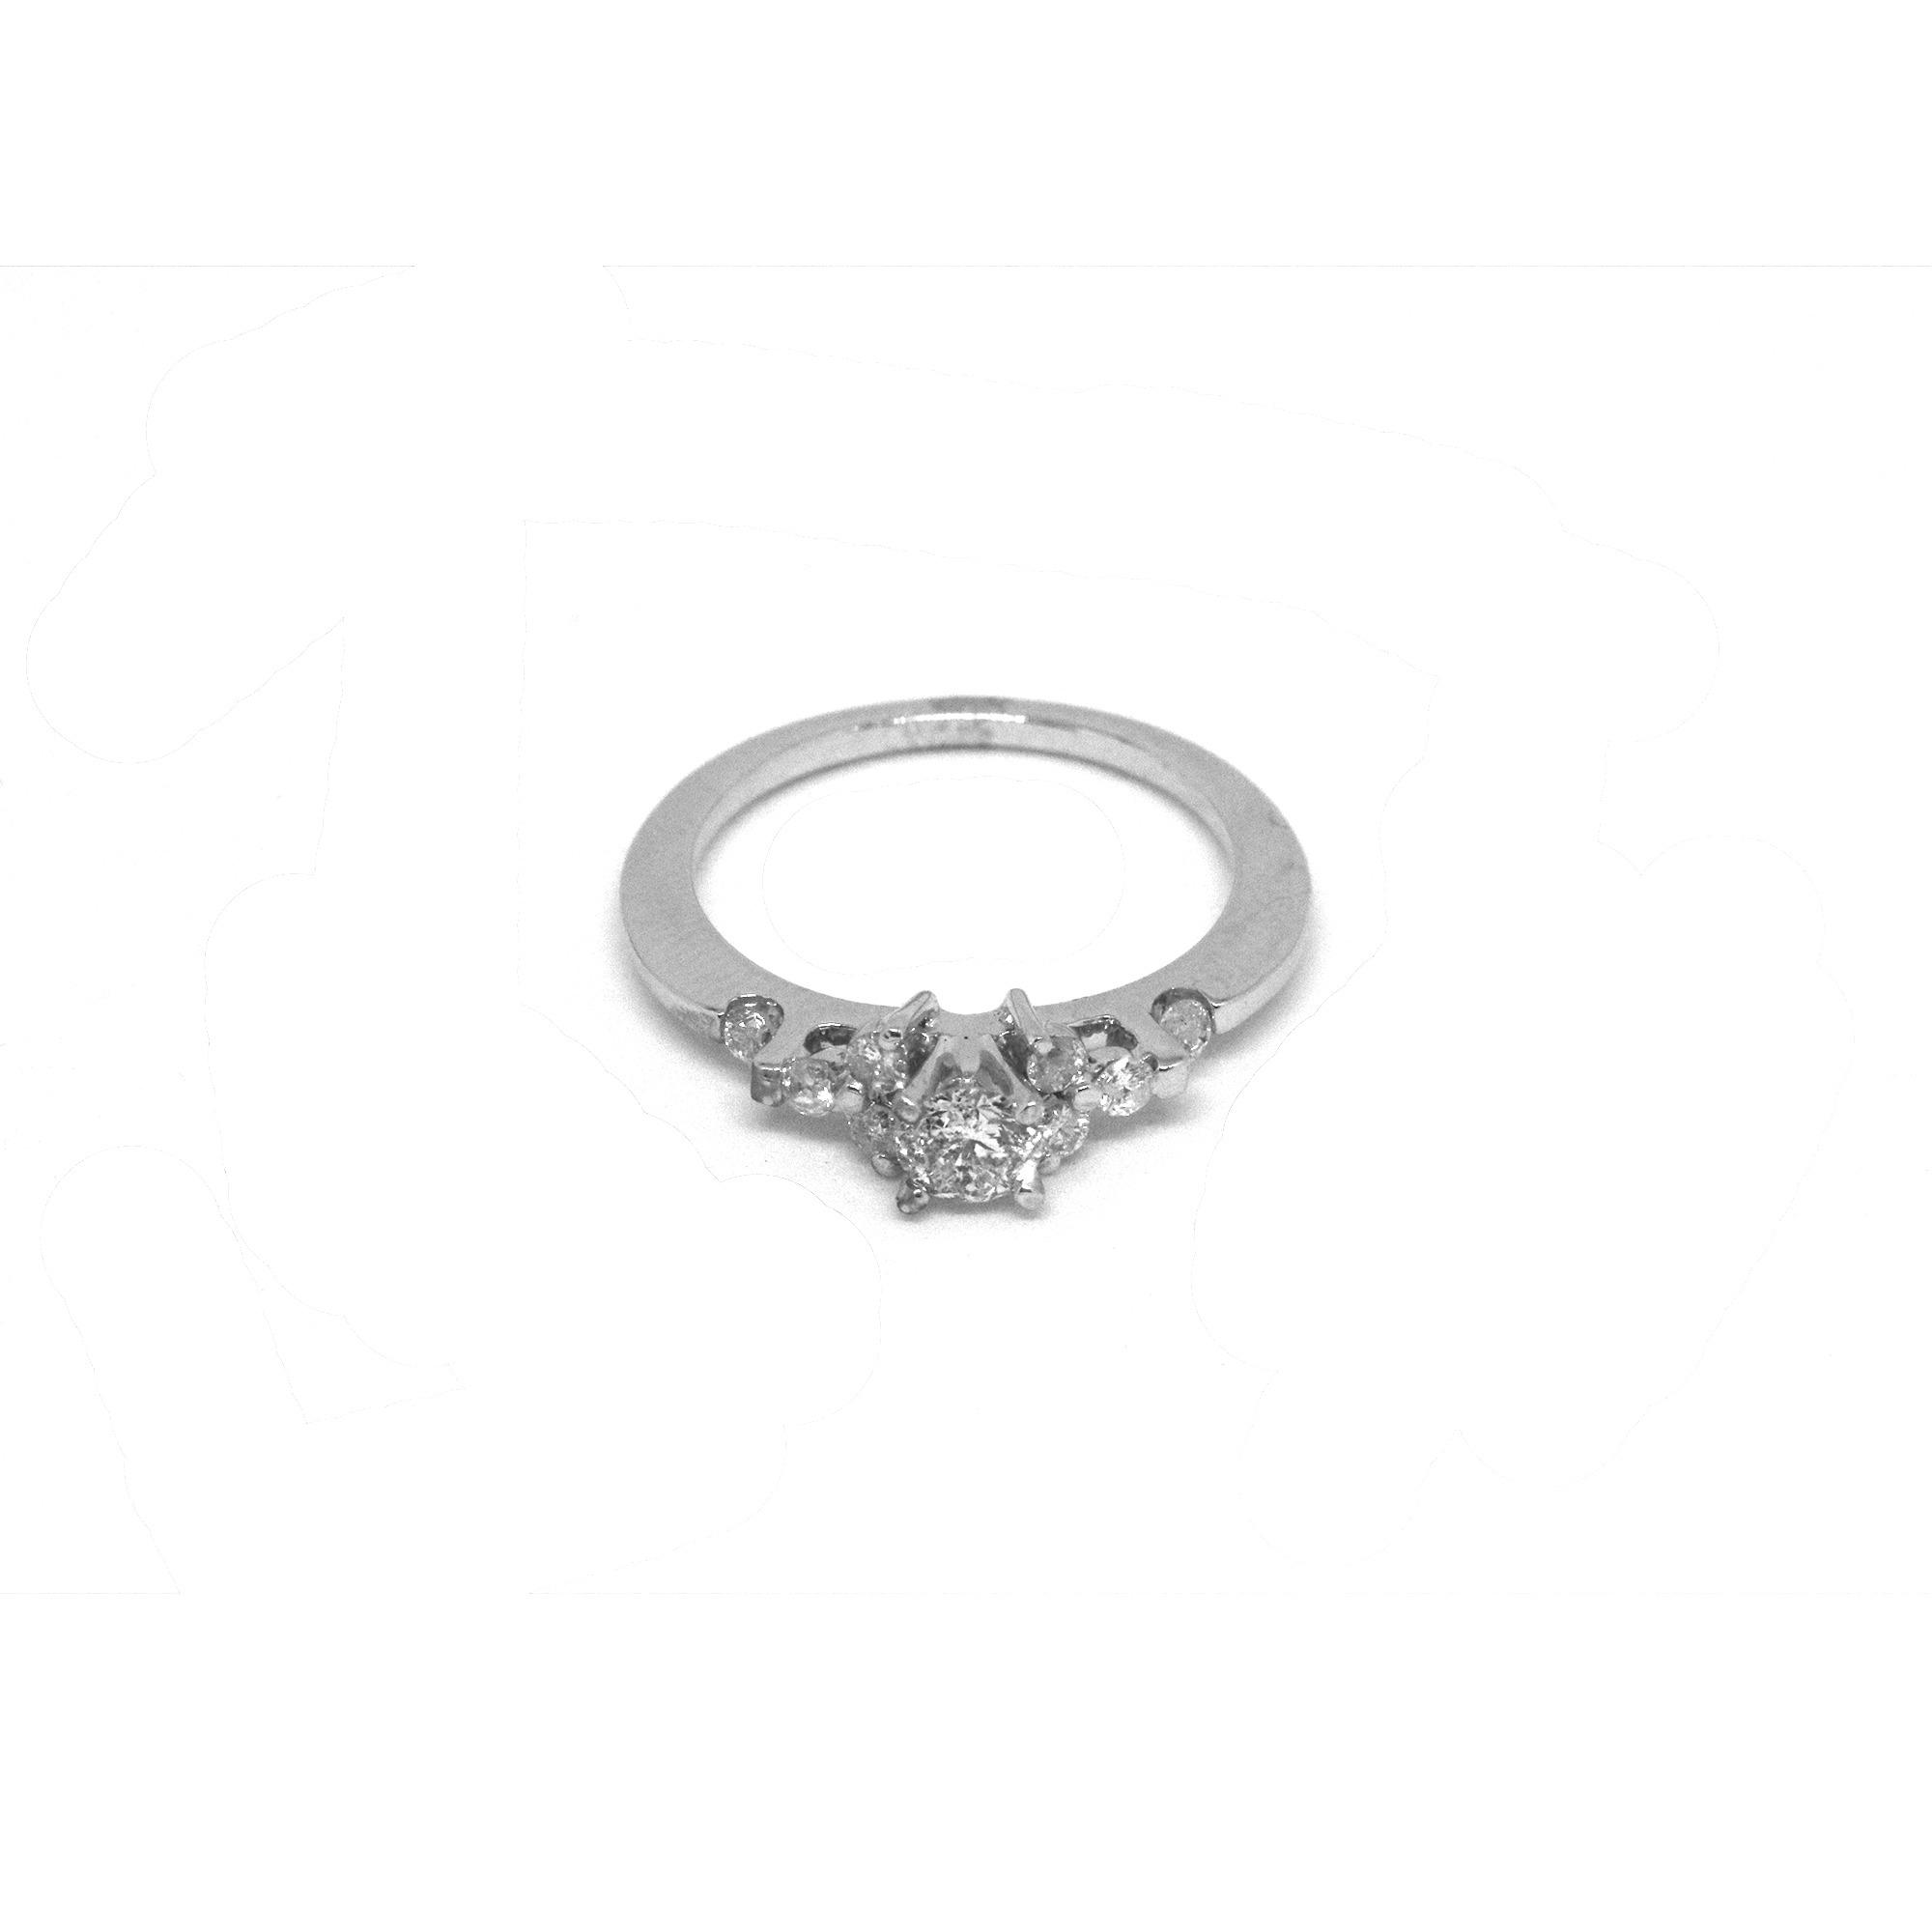 operandi charlotte rings metallic moda chesnais lovers linked three loading lover large by